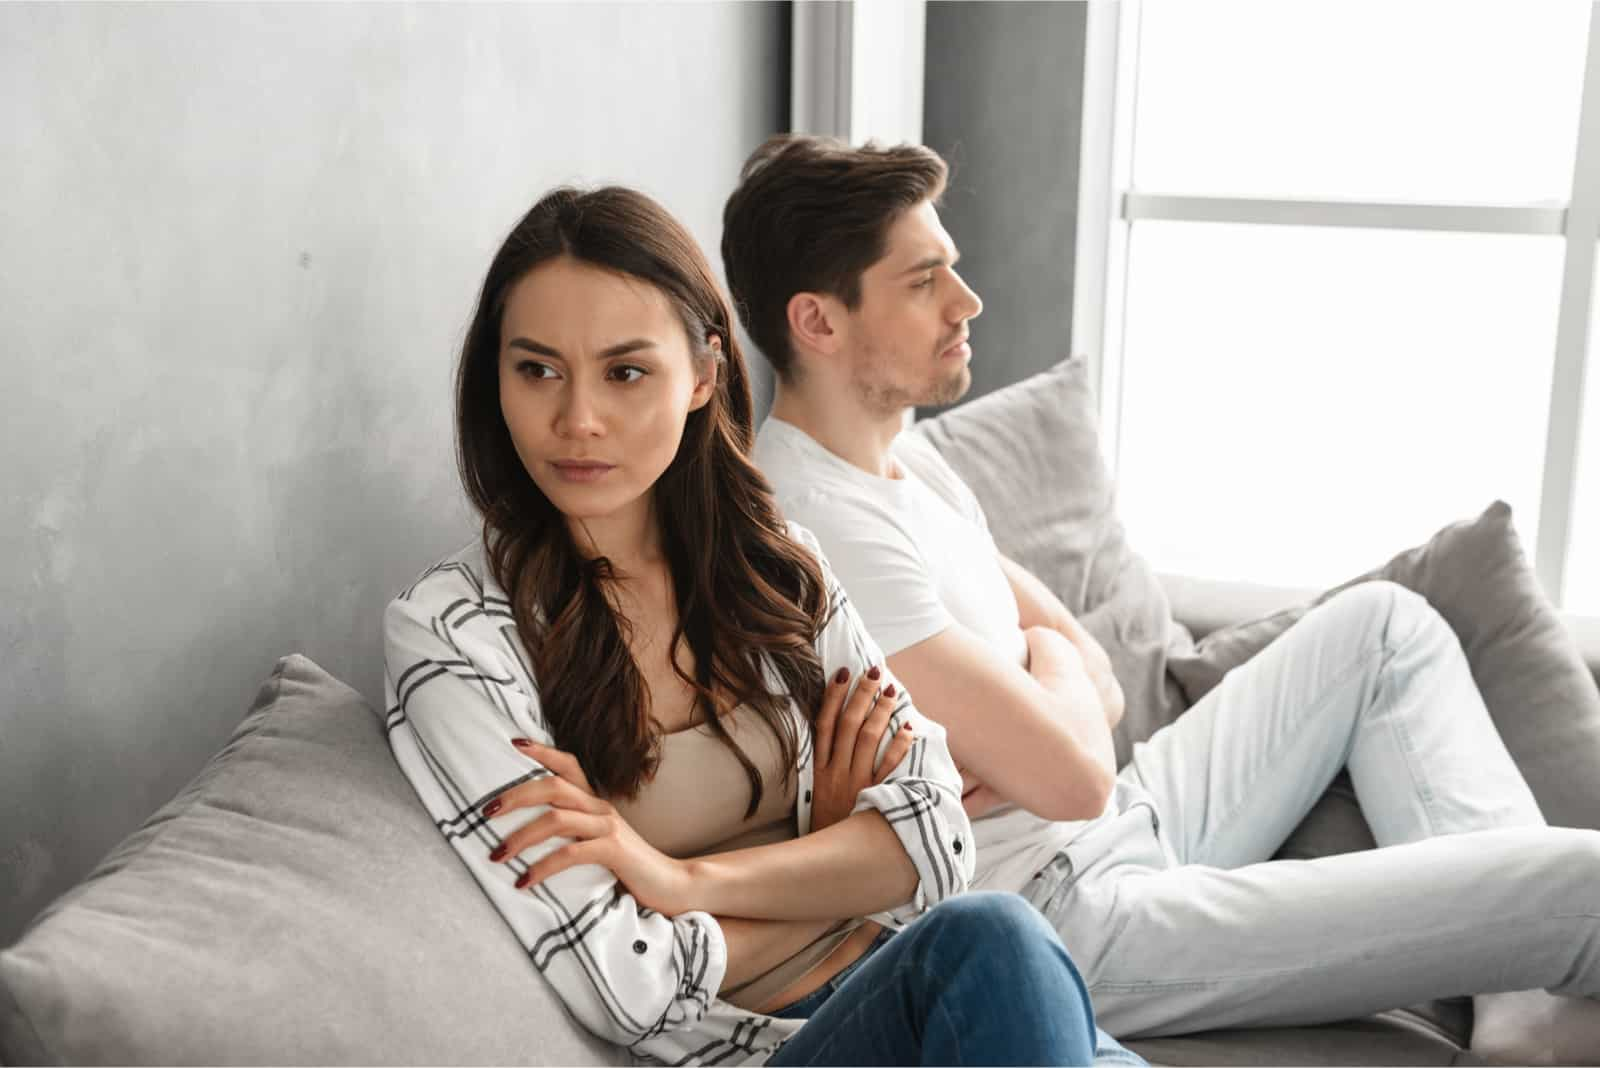 sad man in white t-shirt and woman sitting on couch